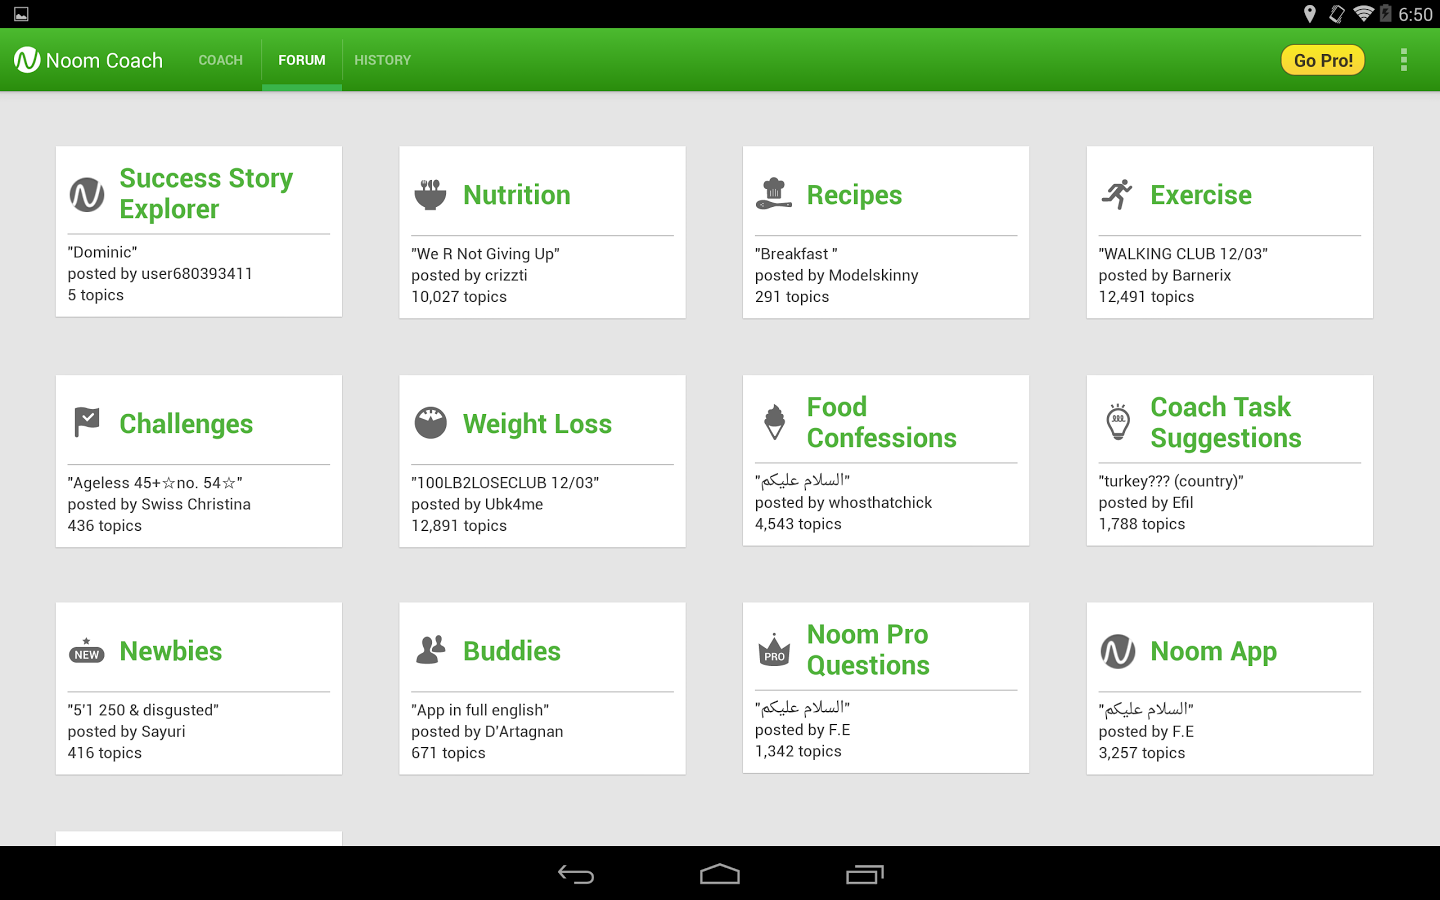 Noom Weight Loss Coach v3.8.2 apk for Android